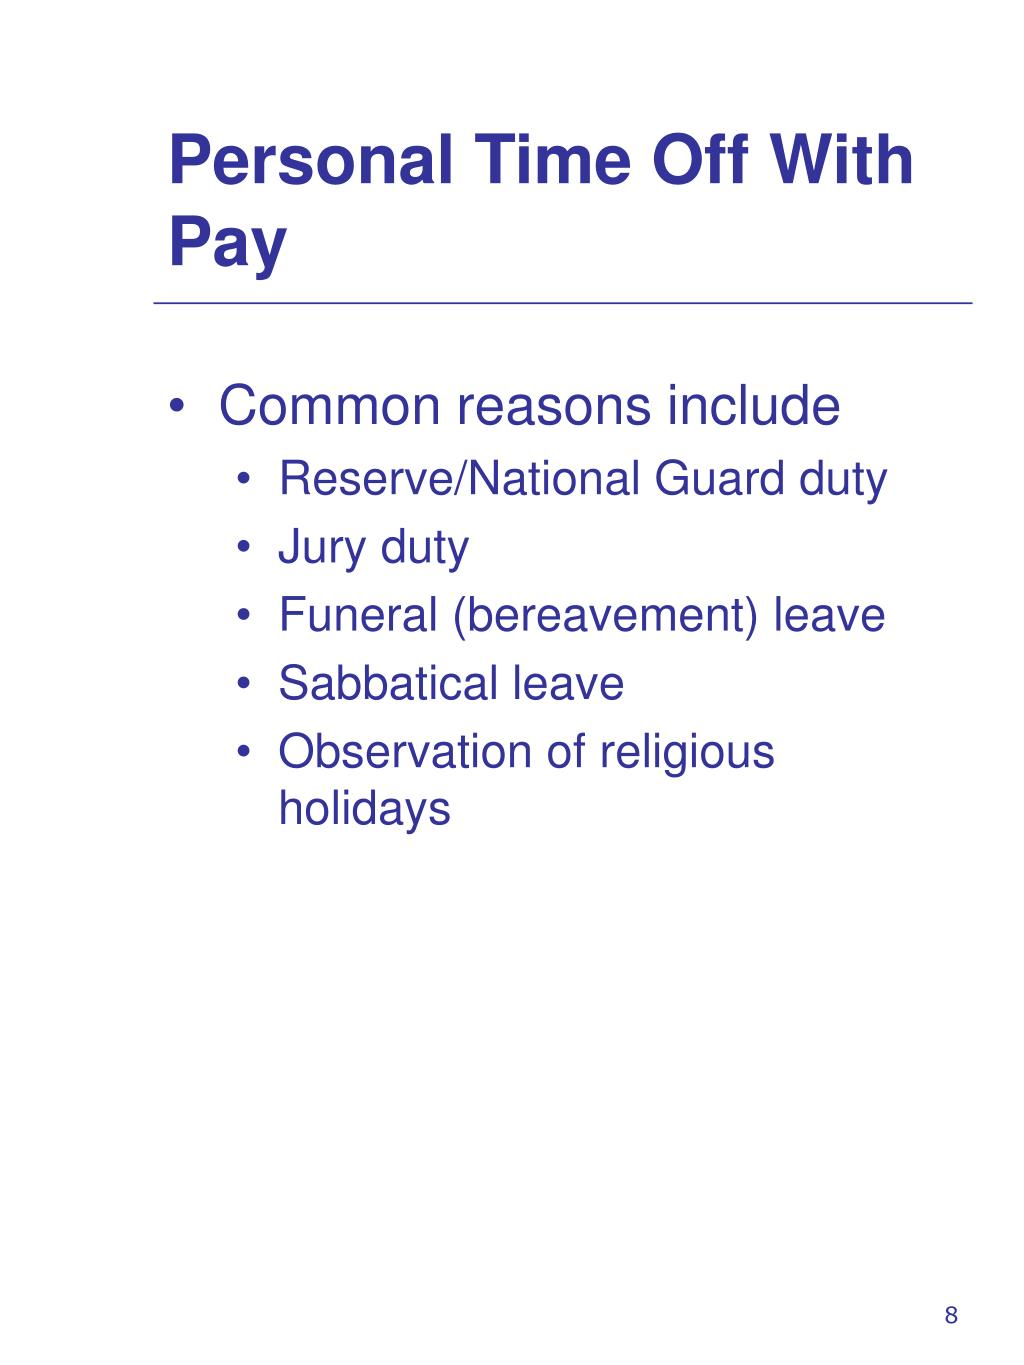 Personal Time Off With Pay